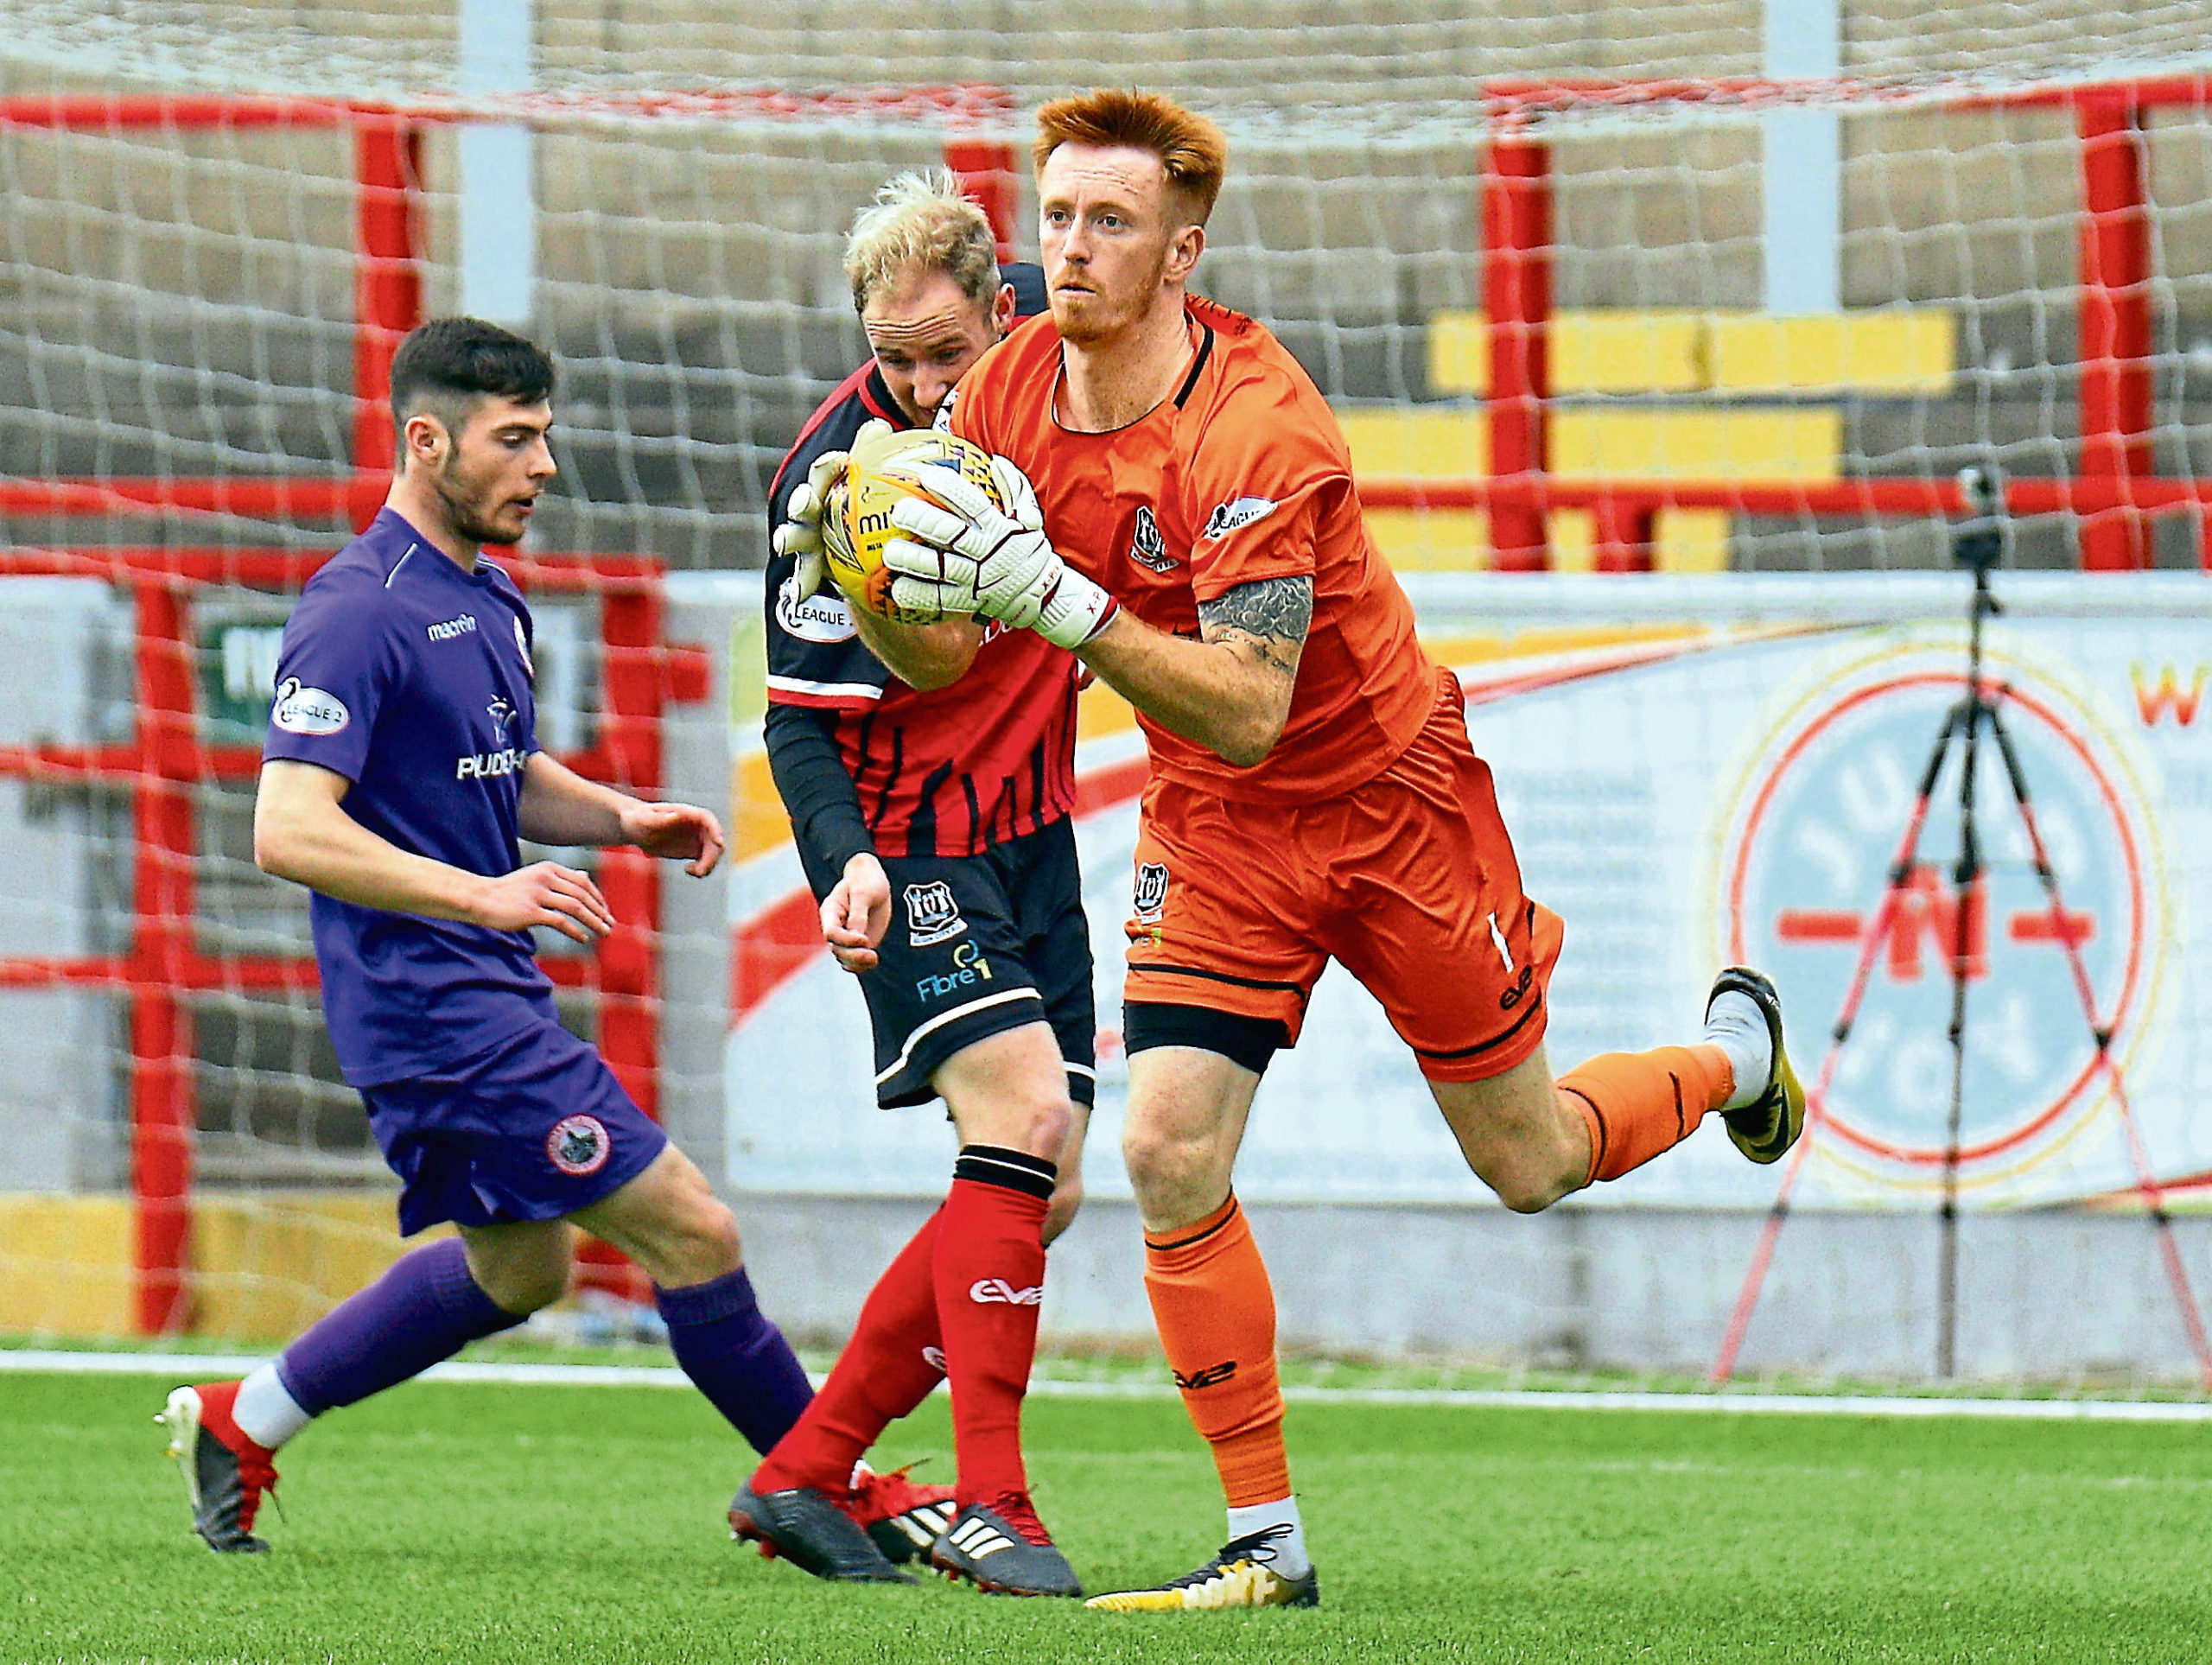 Stirling Albion - Elgin City BOB CROMBIE PIC- 14th September 2019 Stirling Albion - Elgin City in a  Ladbrokes League 2 game played at Forthbank Stadium, Stirling.Kick off 15.00 Elgin goalkeeper Thomas McHale comes out to collect the ball. Robert W Crombie